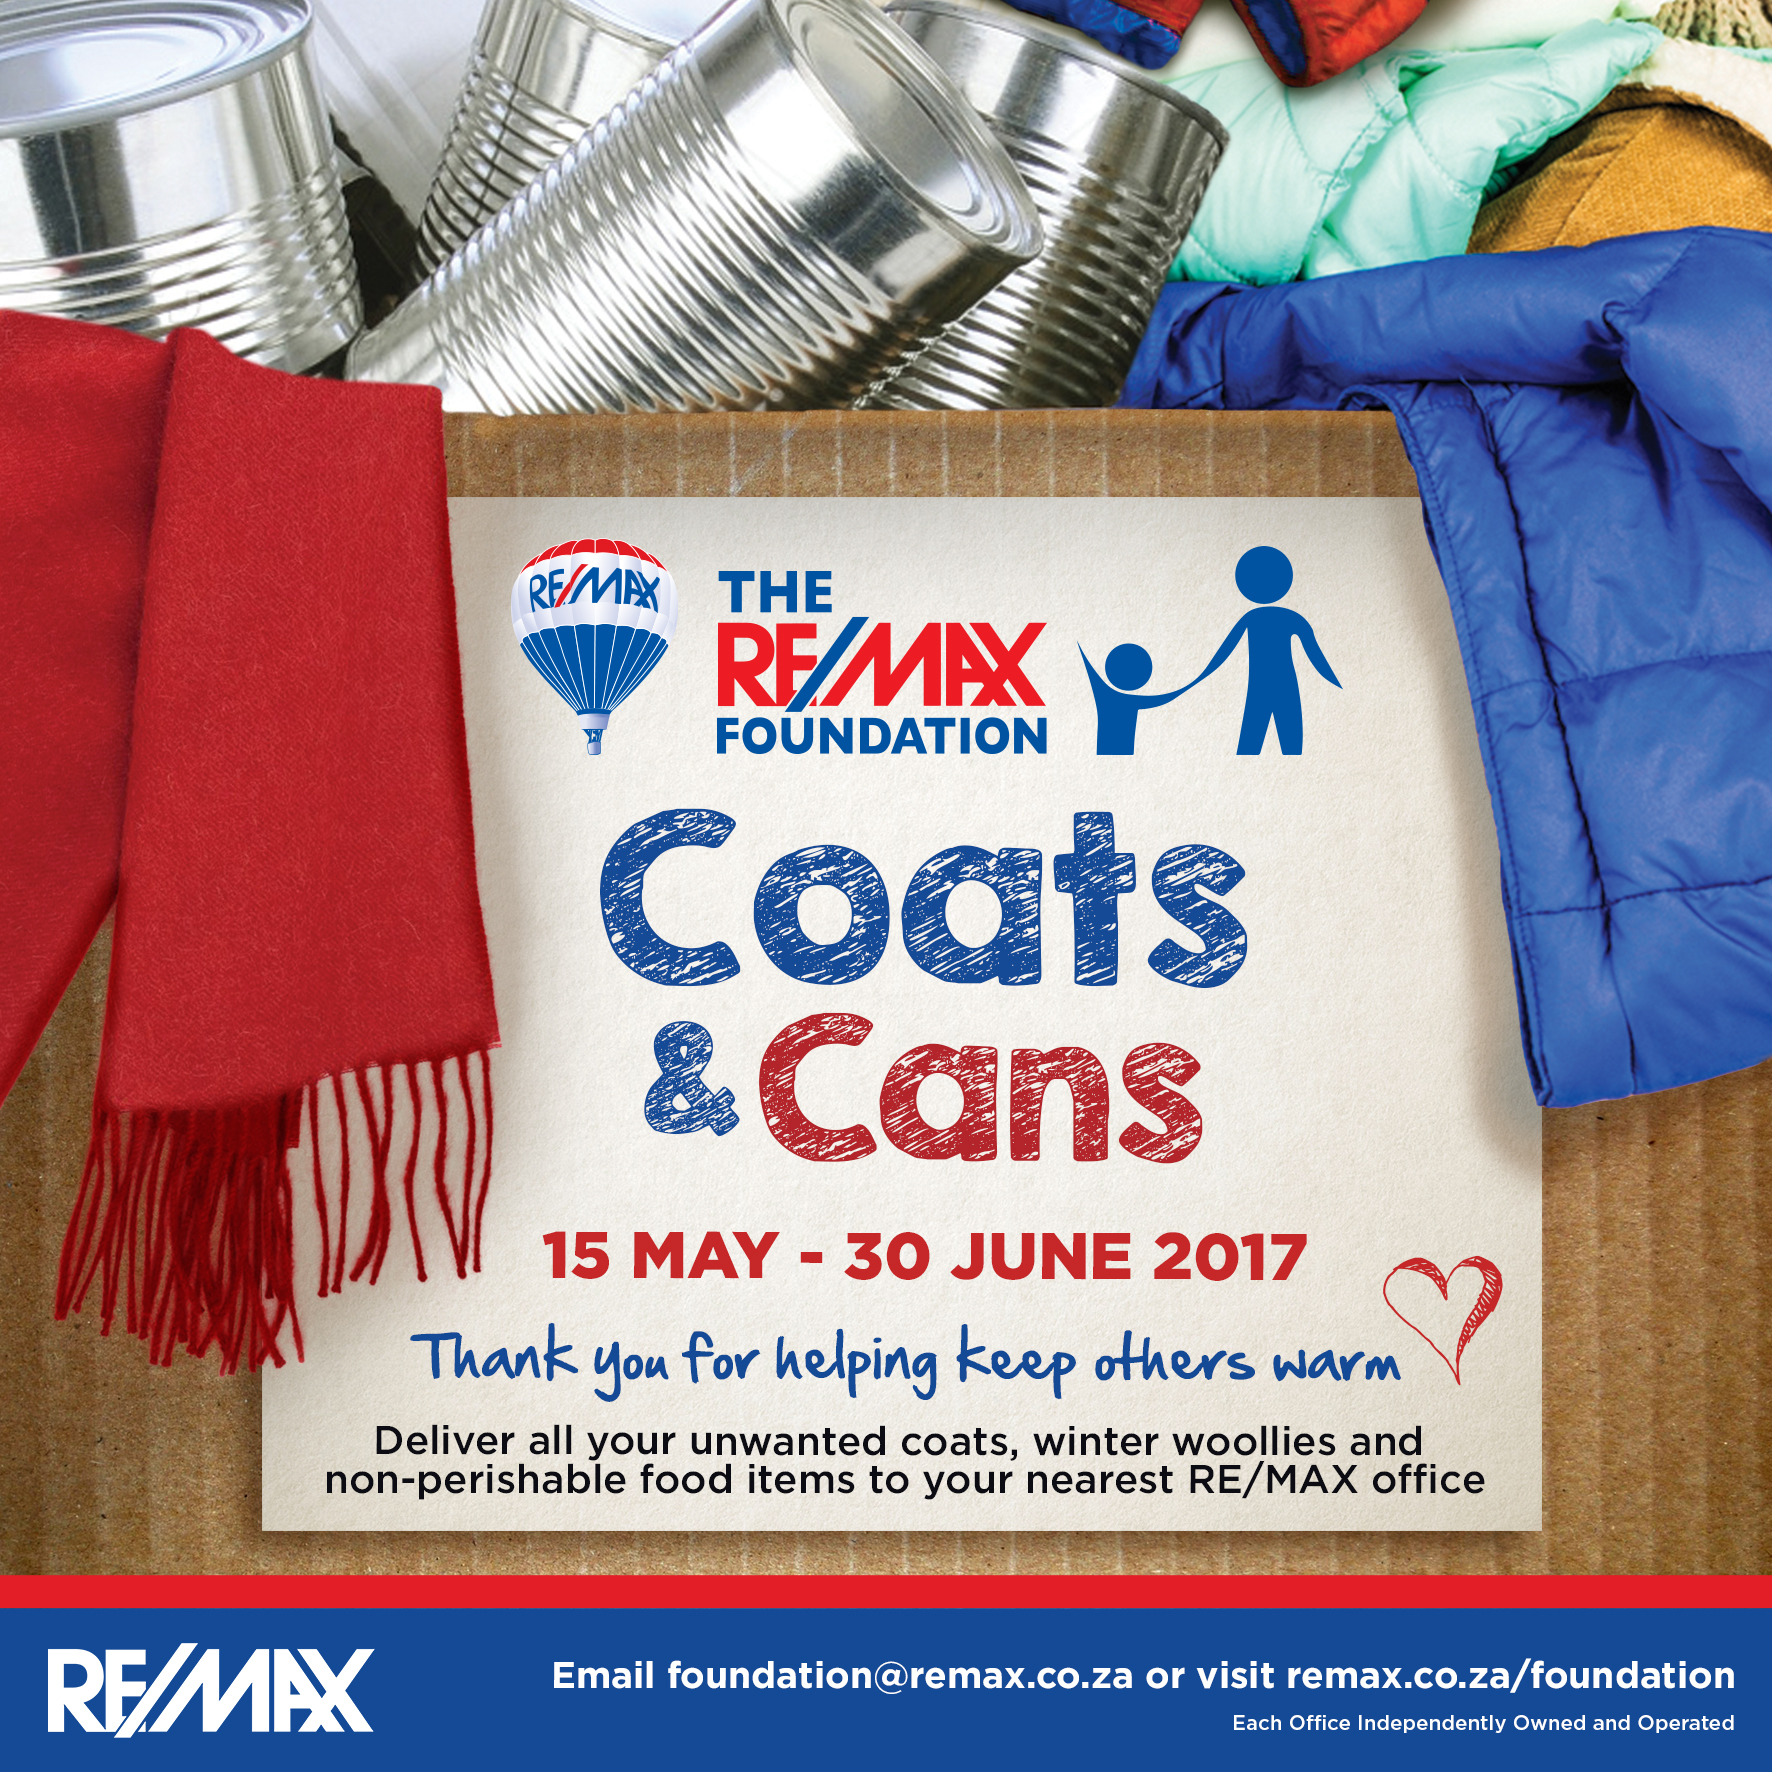 REMAX Coats and Cans gets underway